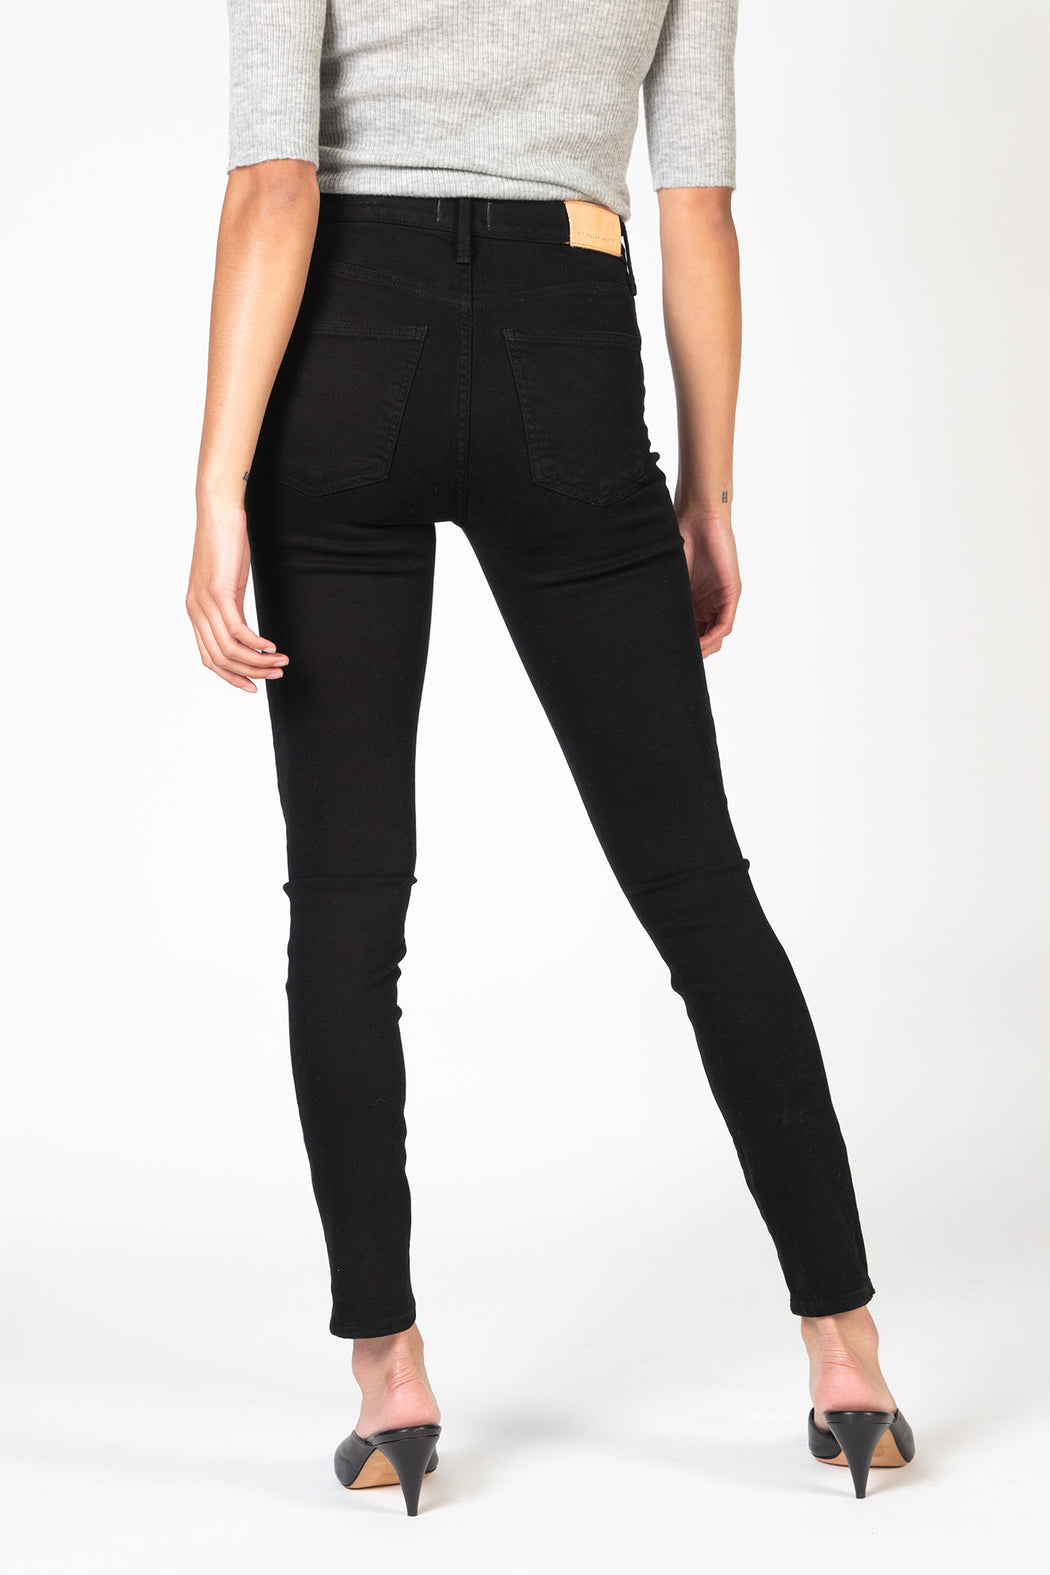 Citizens-of-Humanity-Rocket-Crop-Mid-Rise-Skinny-Fit-Plush-Black